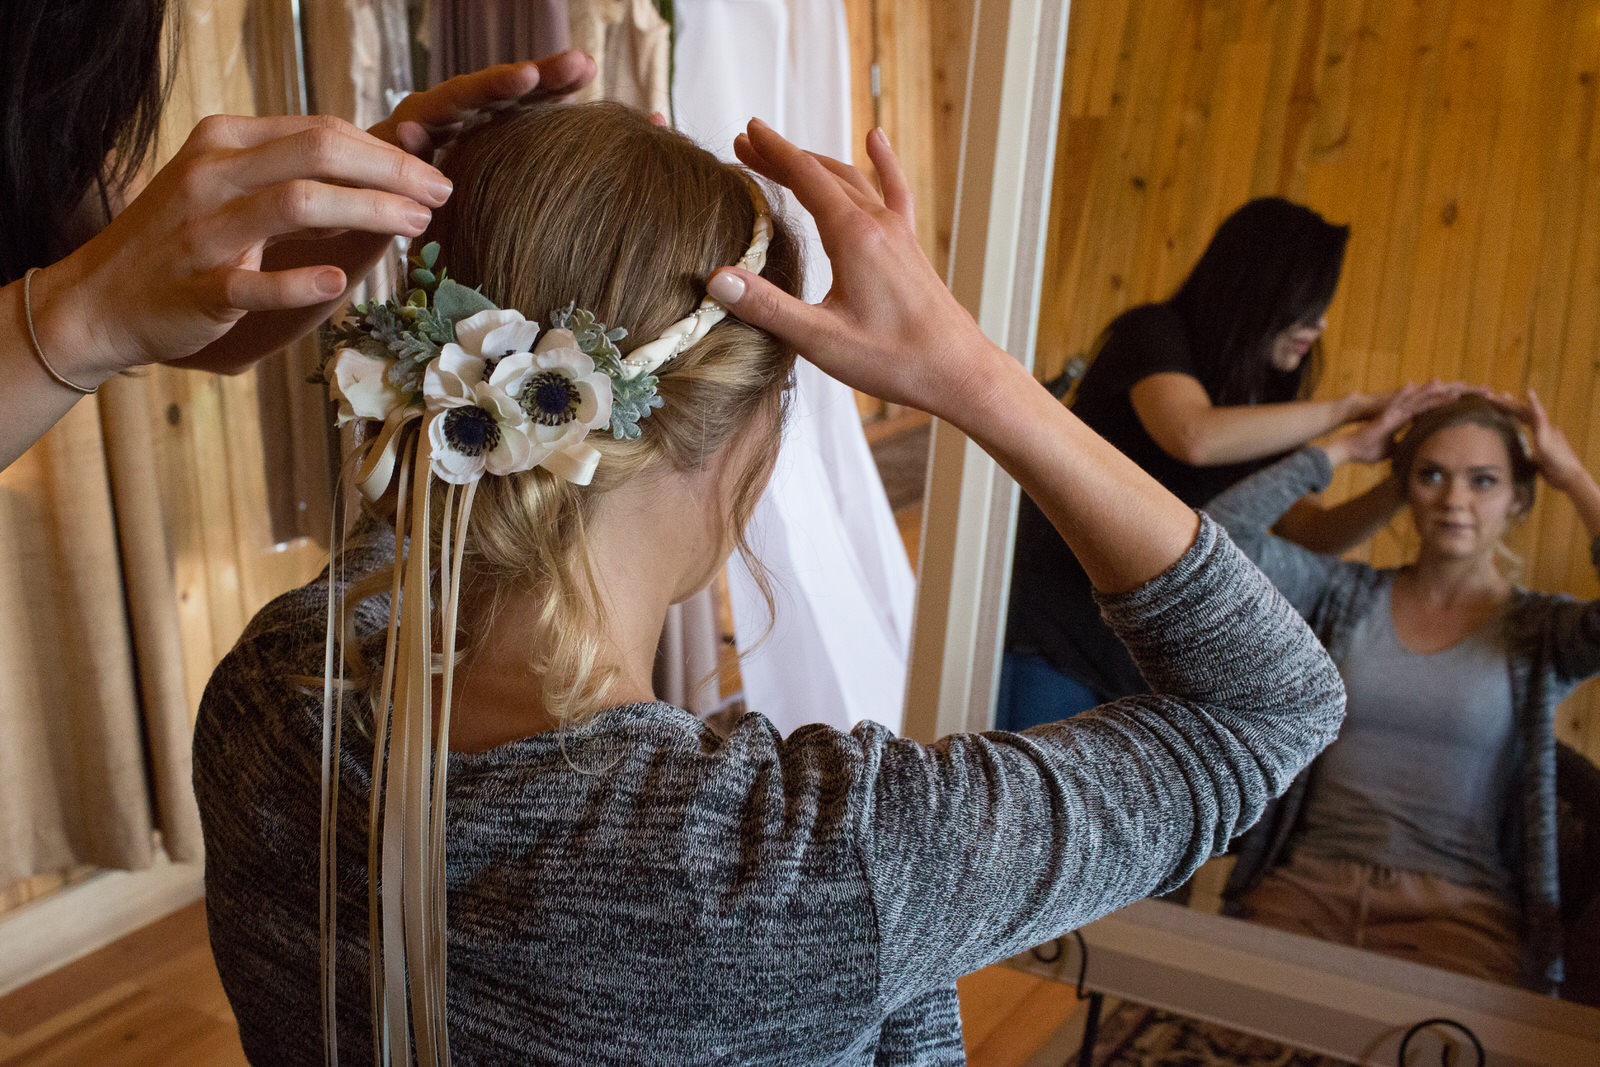 flower crown being placed on a bride as she looks at herself in the mirror and the stylist makes it perfect